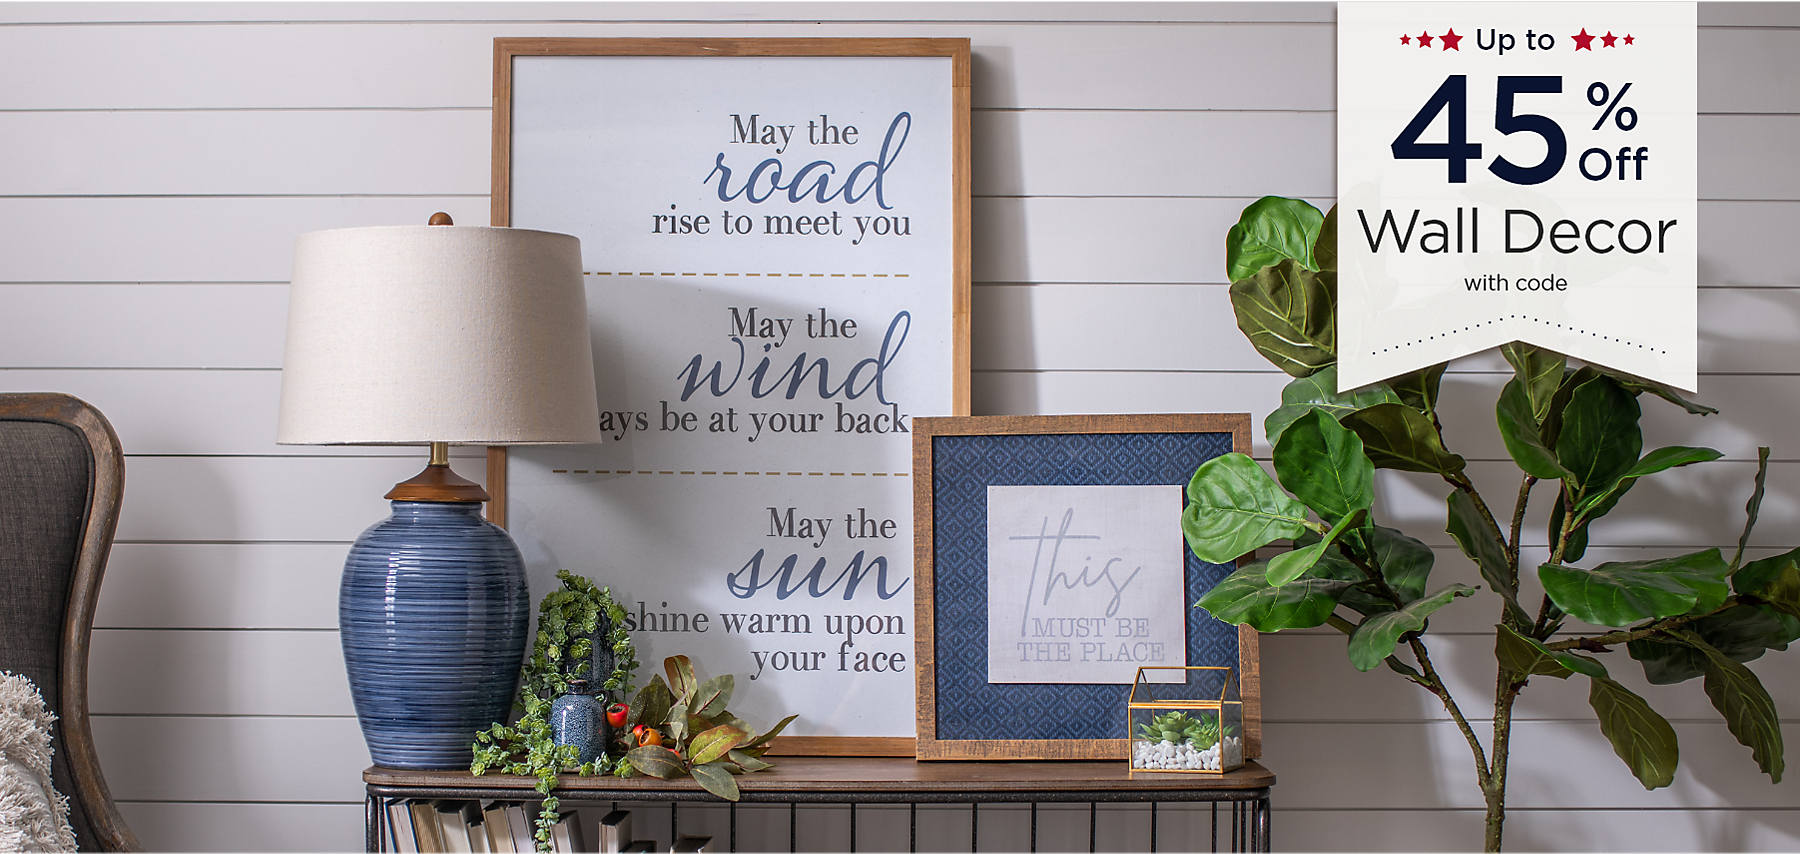 Up to 45% Off Wall Decor with code